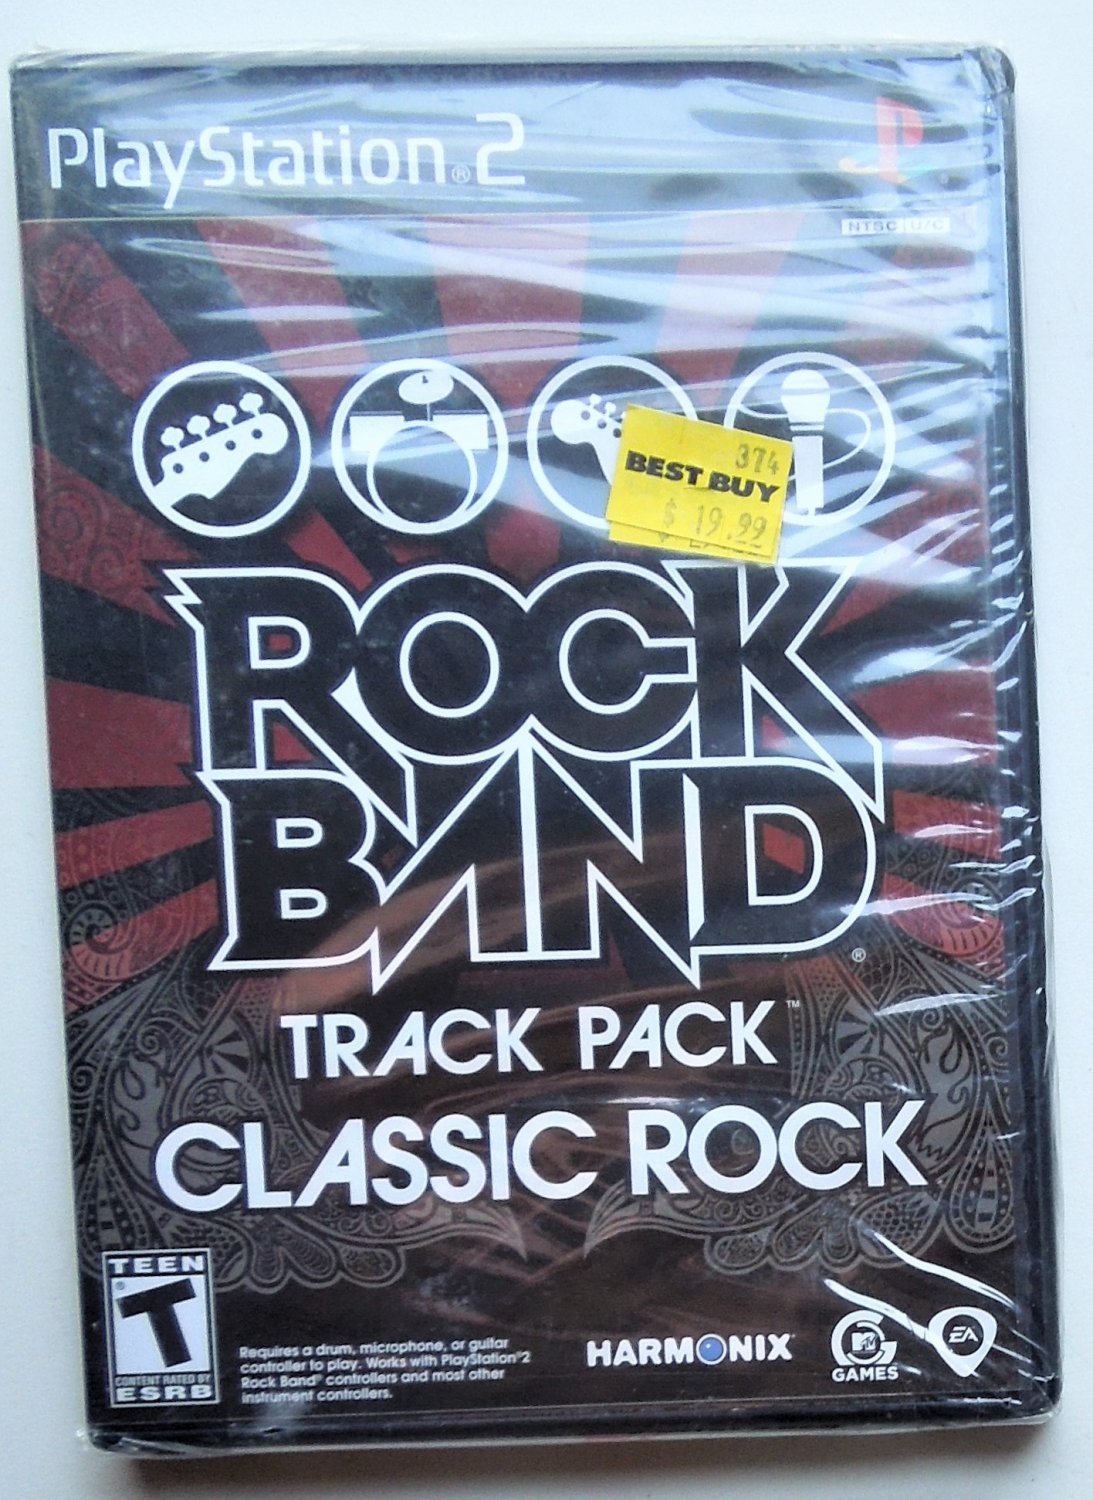 2009 Rock Band Track Pack Classic Rock For Playstation 2 Game Systems MIP